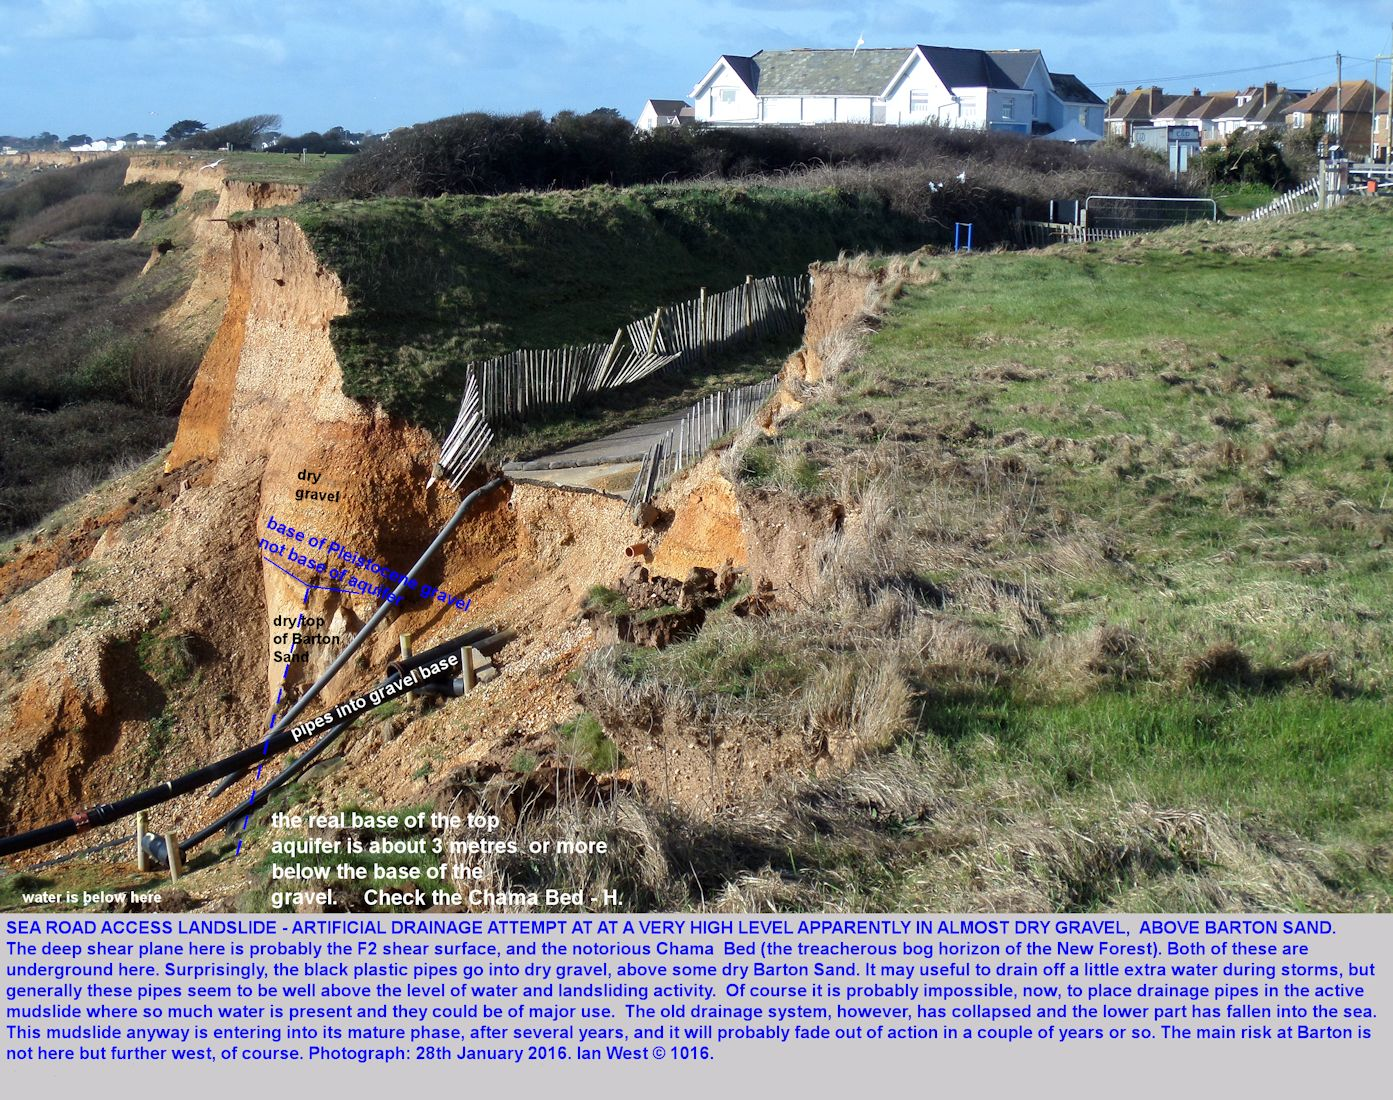 It is surprising that plastic pipes have been inserted into the Pleistocene gravel at a high level and above permeable Barton Sand, not at the level at which water would be expected to  accumulate, location - the Sea Road Access Landslide, Barton-on-Sea, Hampshire, 28th January 2016